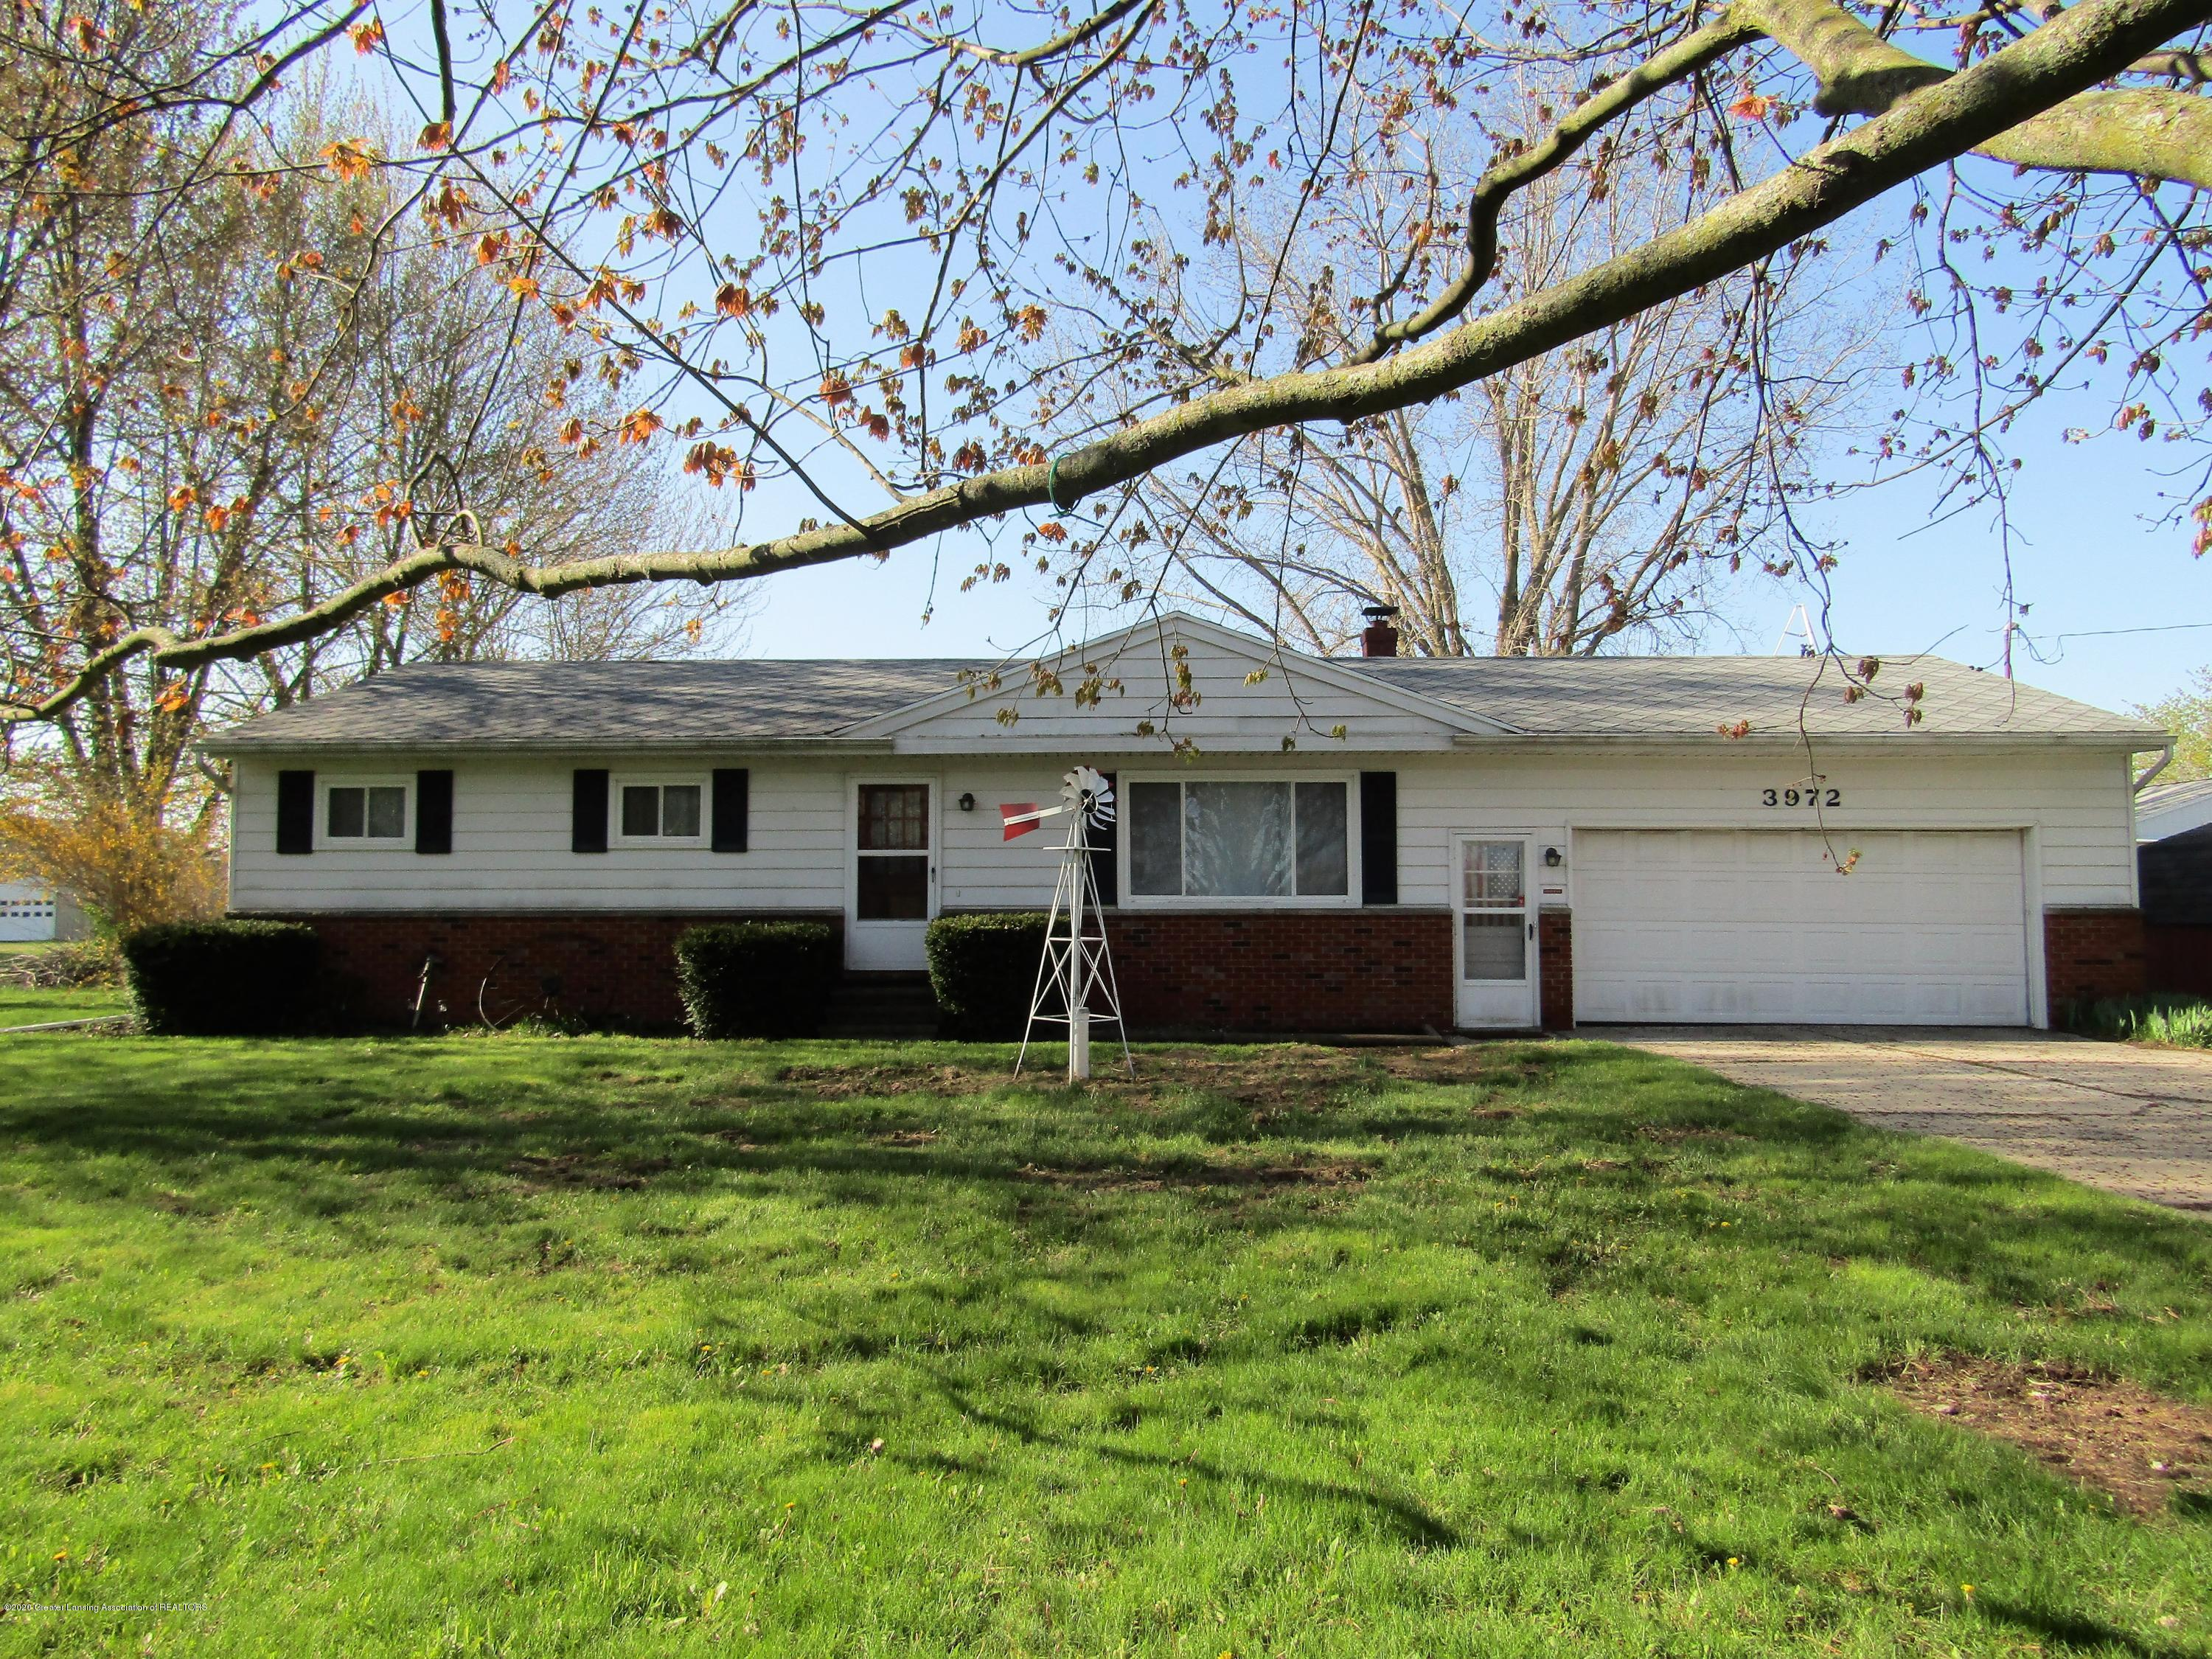 3972 E Frost Rd - 3972 E Frost Rd. - 1